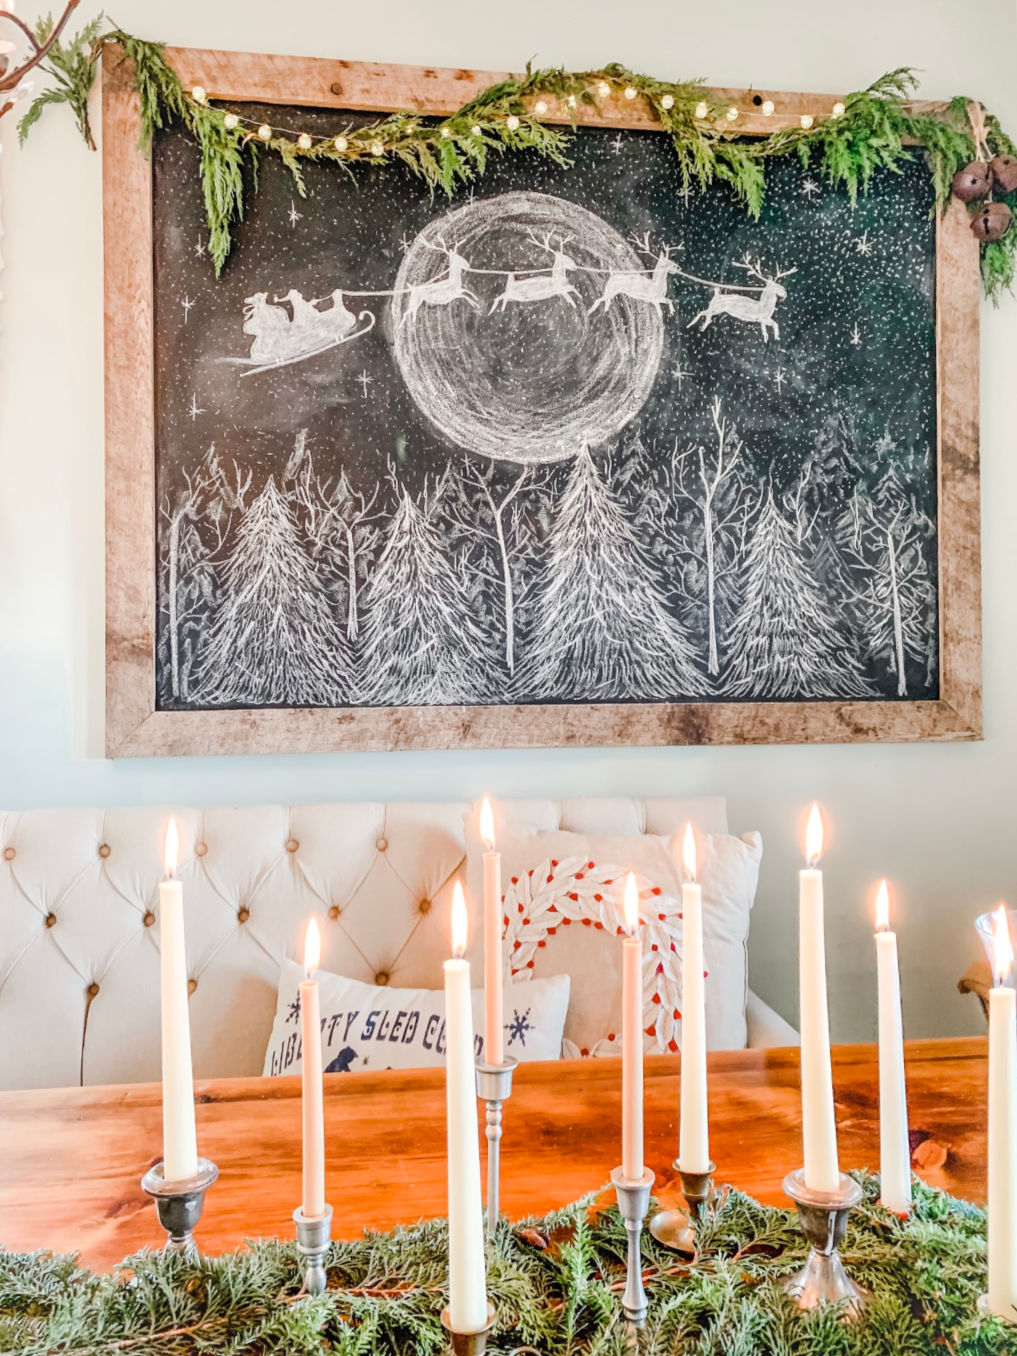 Stunning Christmas chalkboard with Santa and his reindeer flying across the moon. Inspired by the original art at kellyelko.com #chalkart #chalkboard #christmaschalkboard #christmaschalkart #santa #farmhousedecor #farmhousechristmas #christmasdecor #farmhousestyle #fixerupperstyle #kellyelko